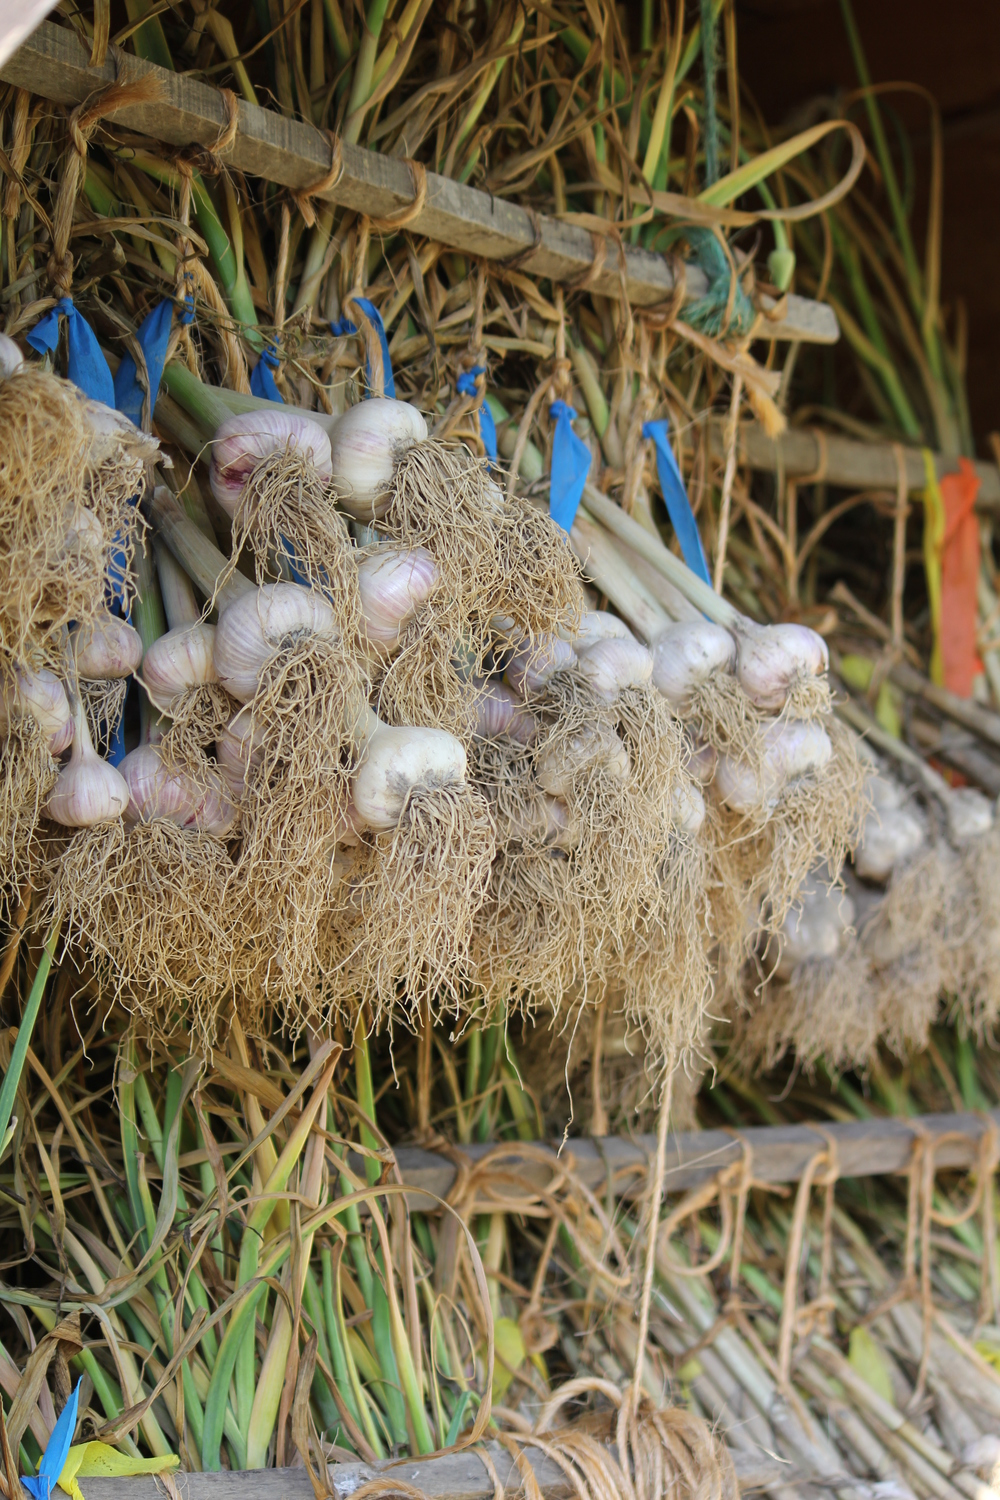 Our heirloom garlic curing in a drying shed.